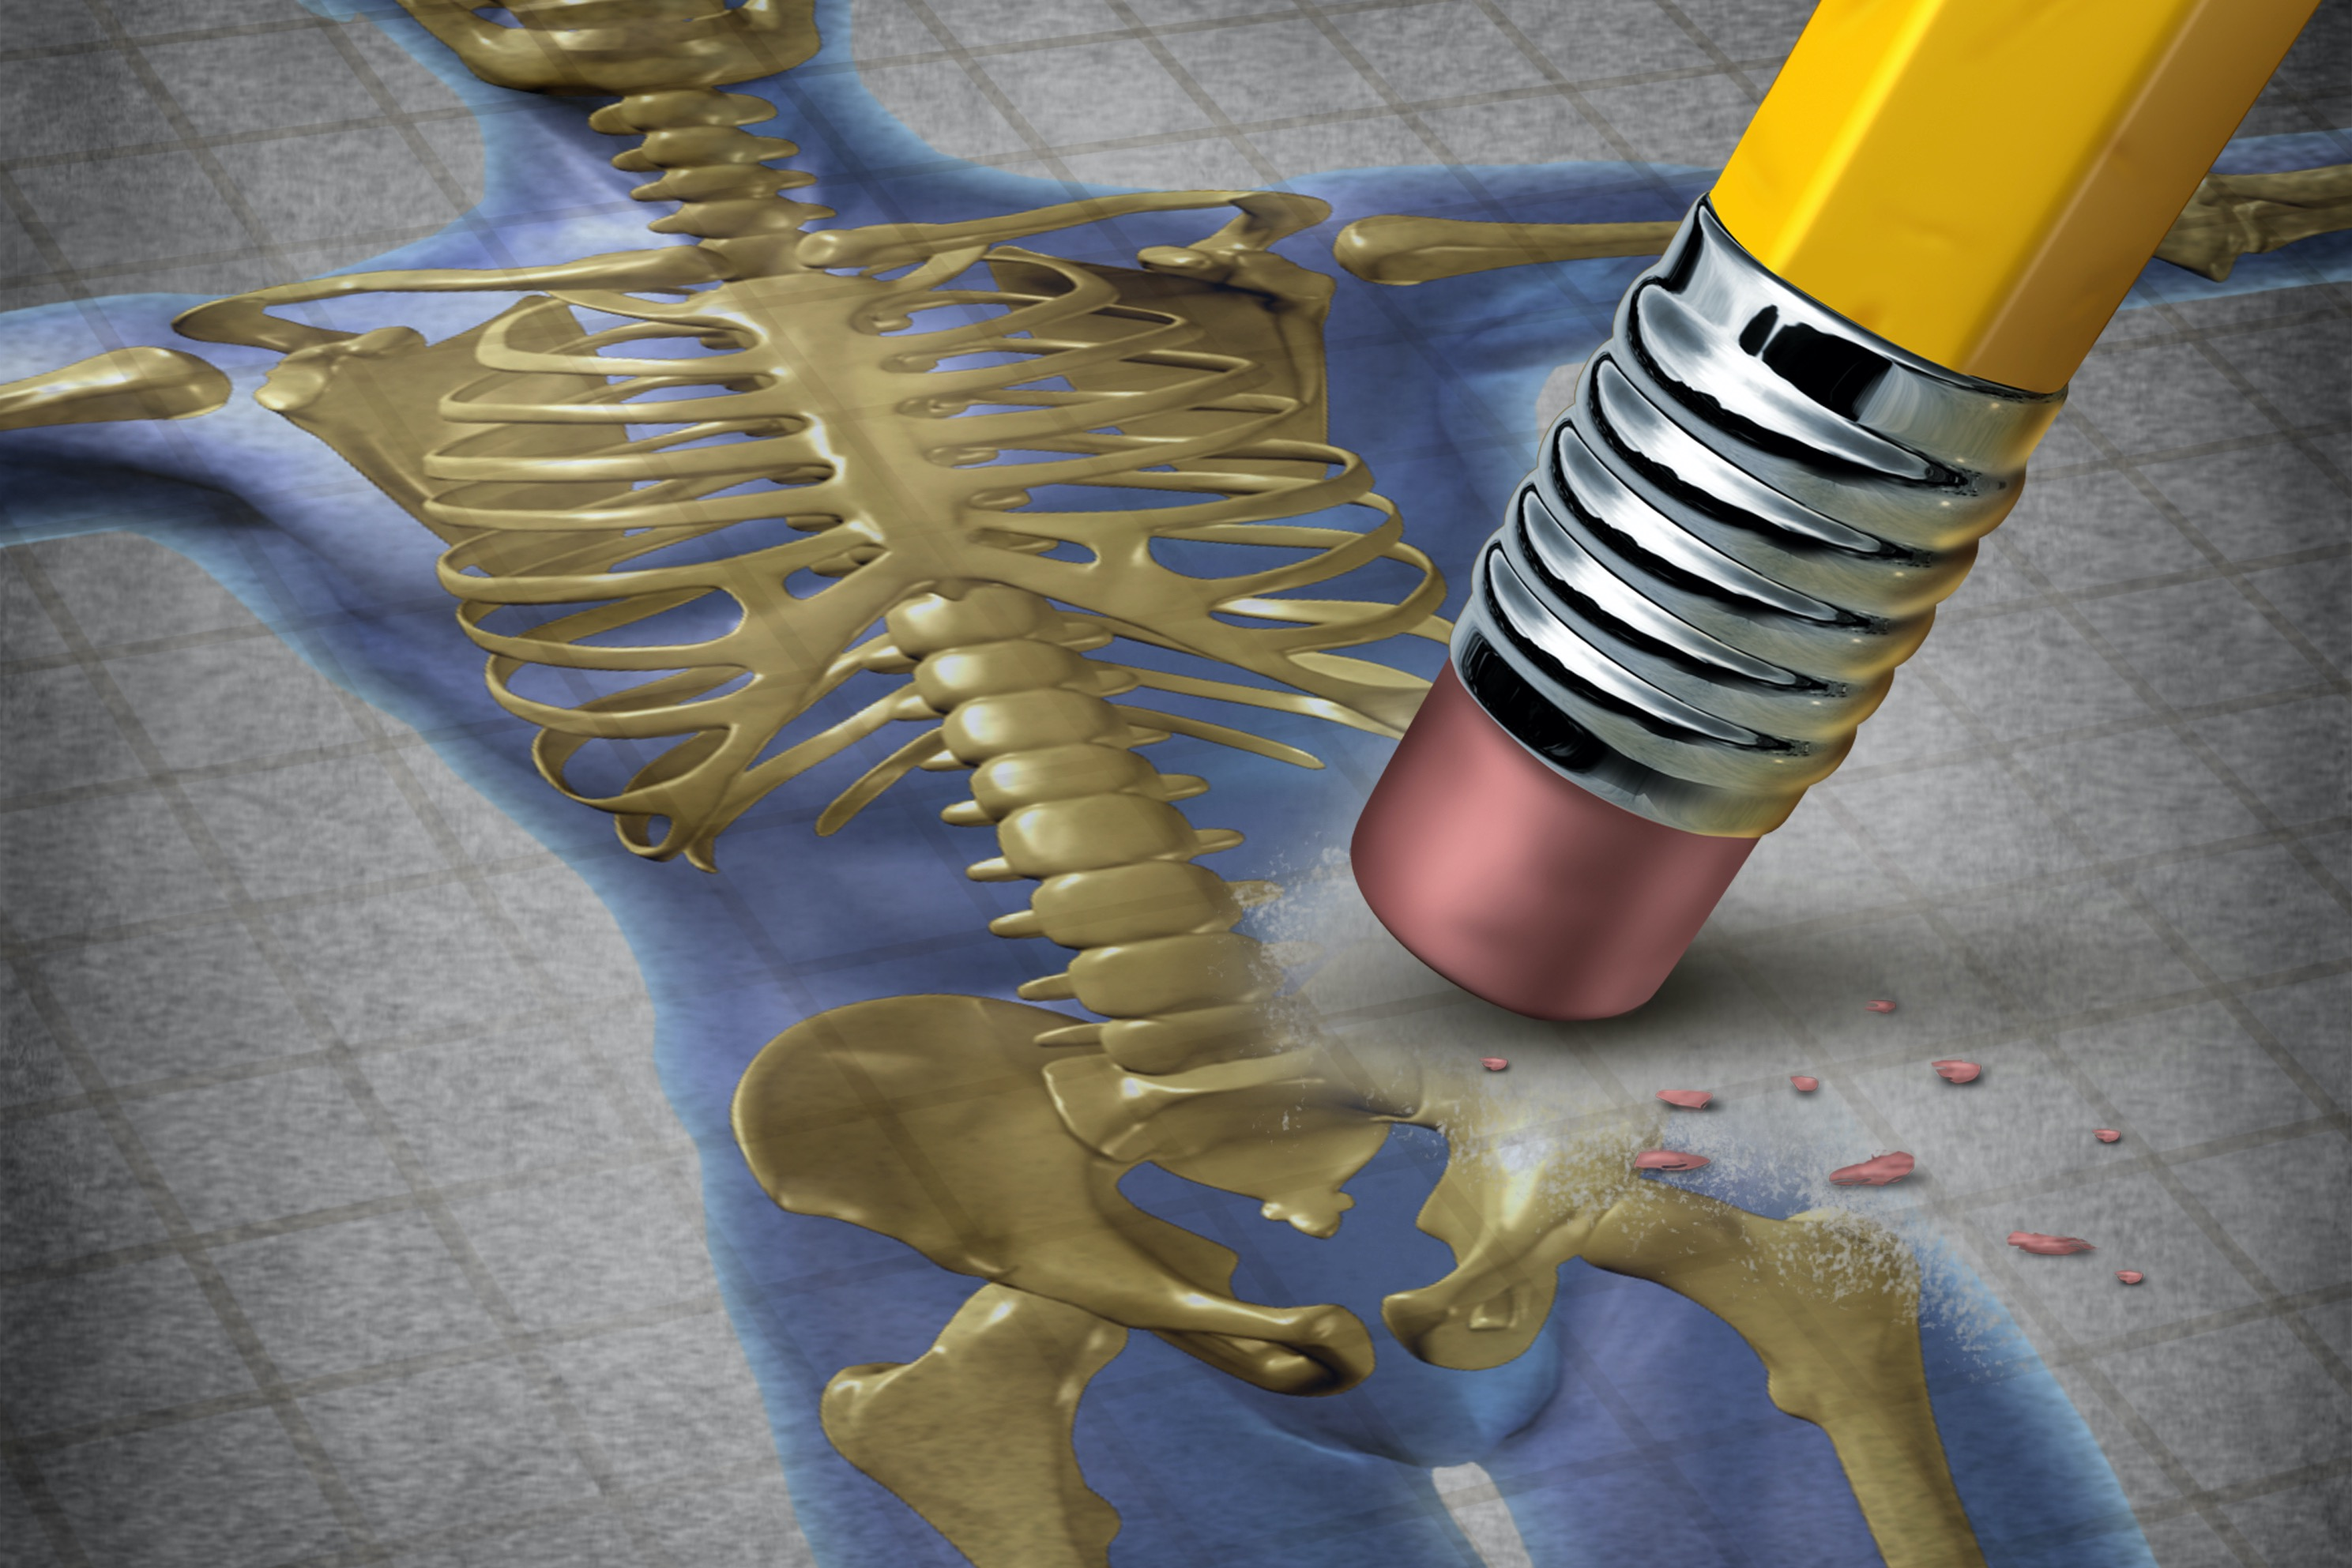 Study links air pollution to osteoporosis